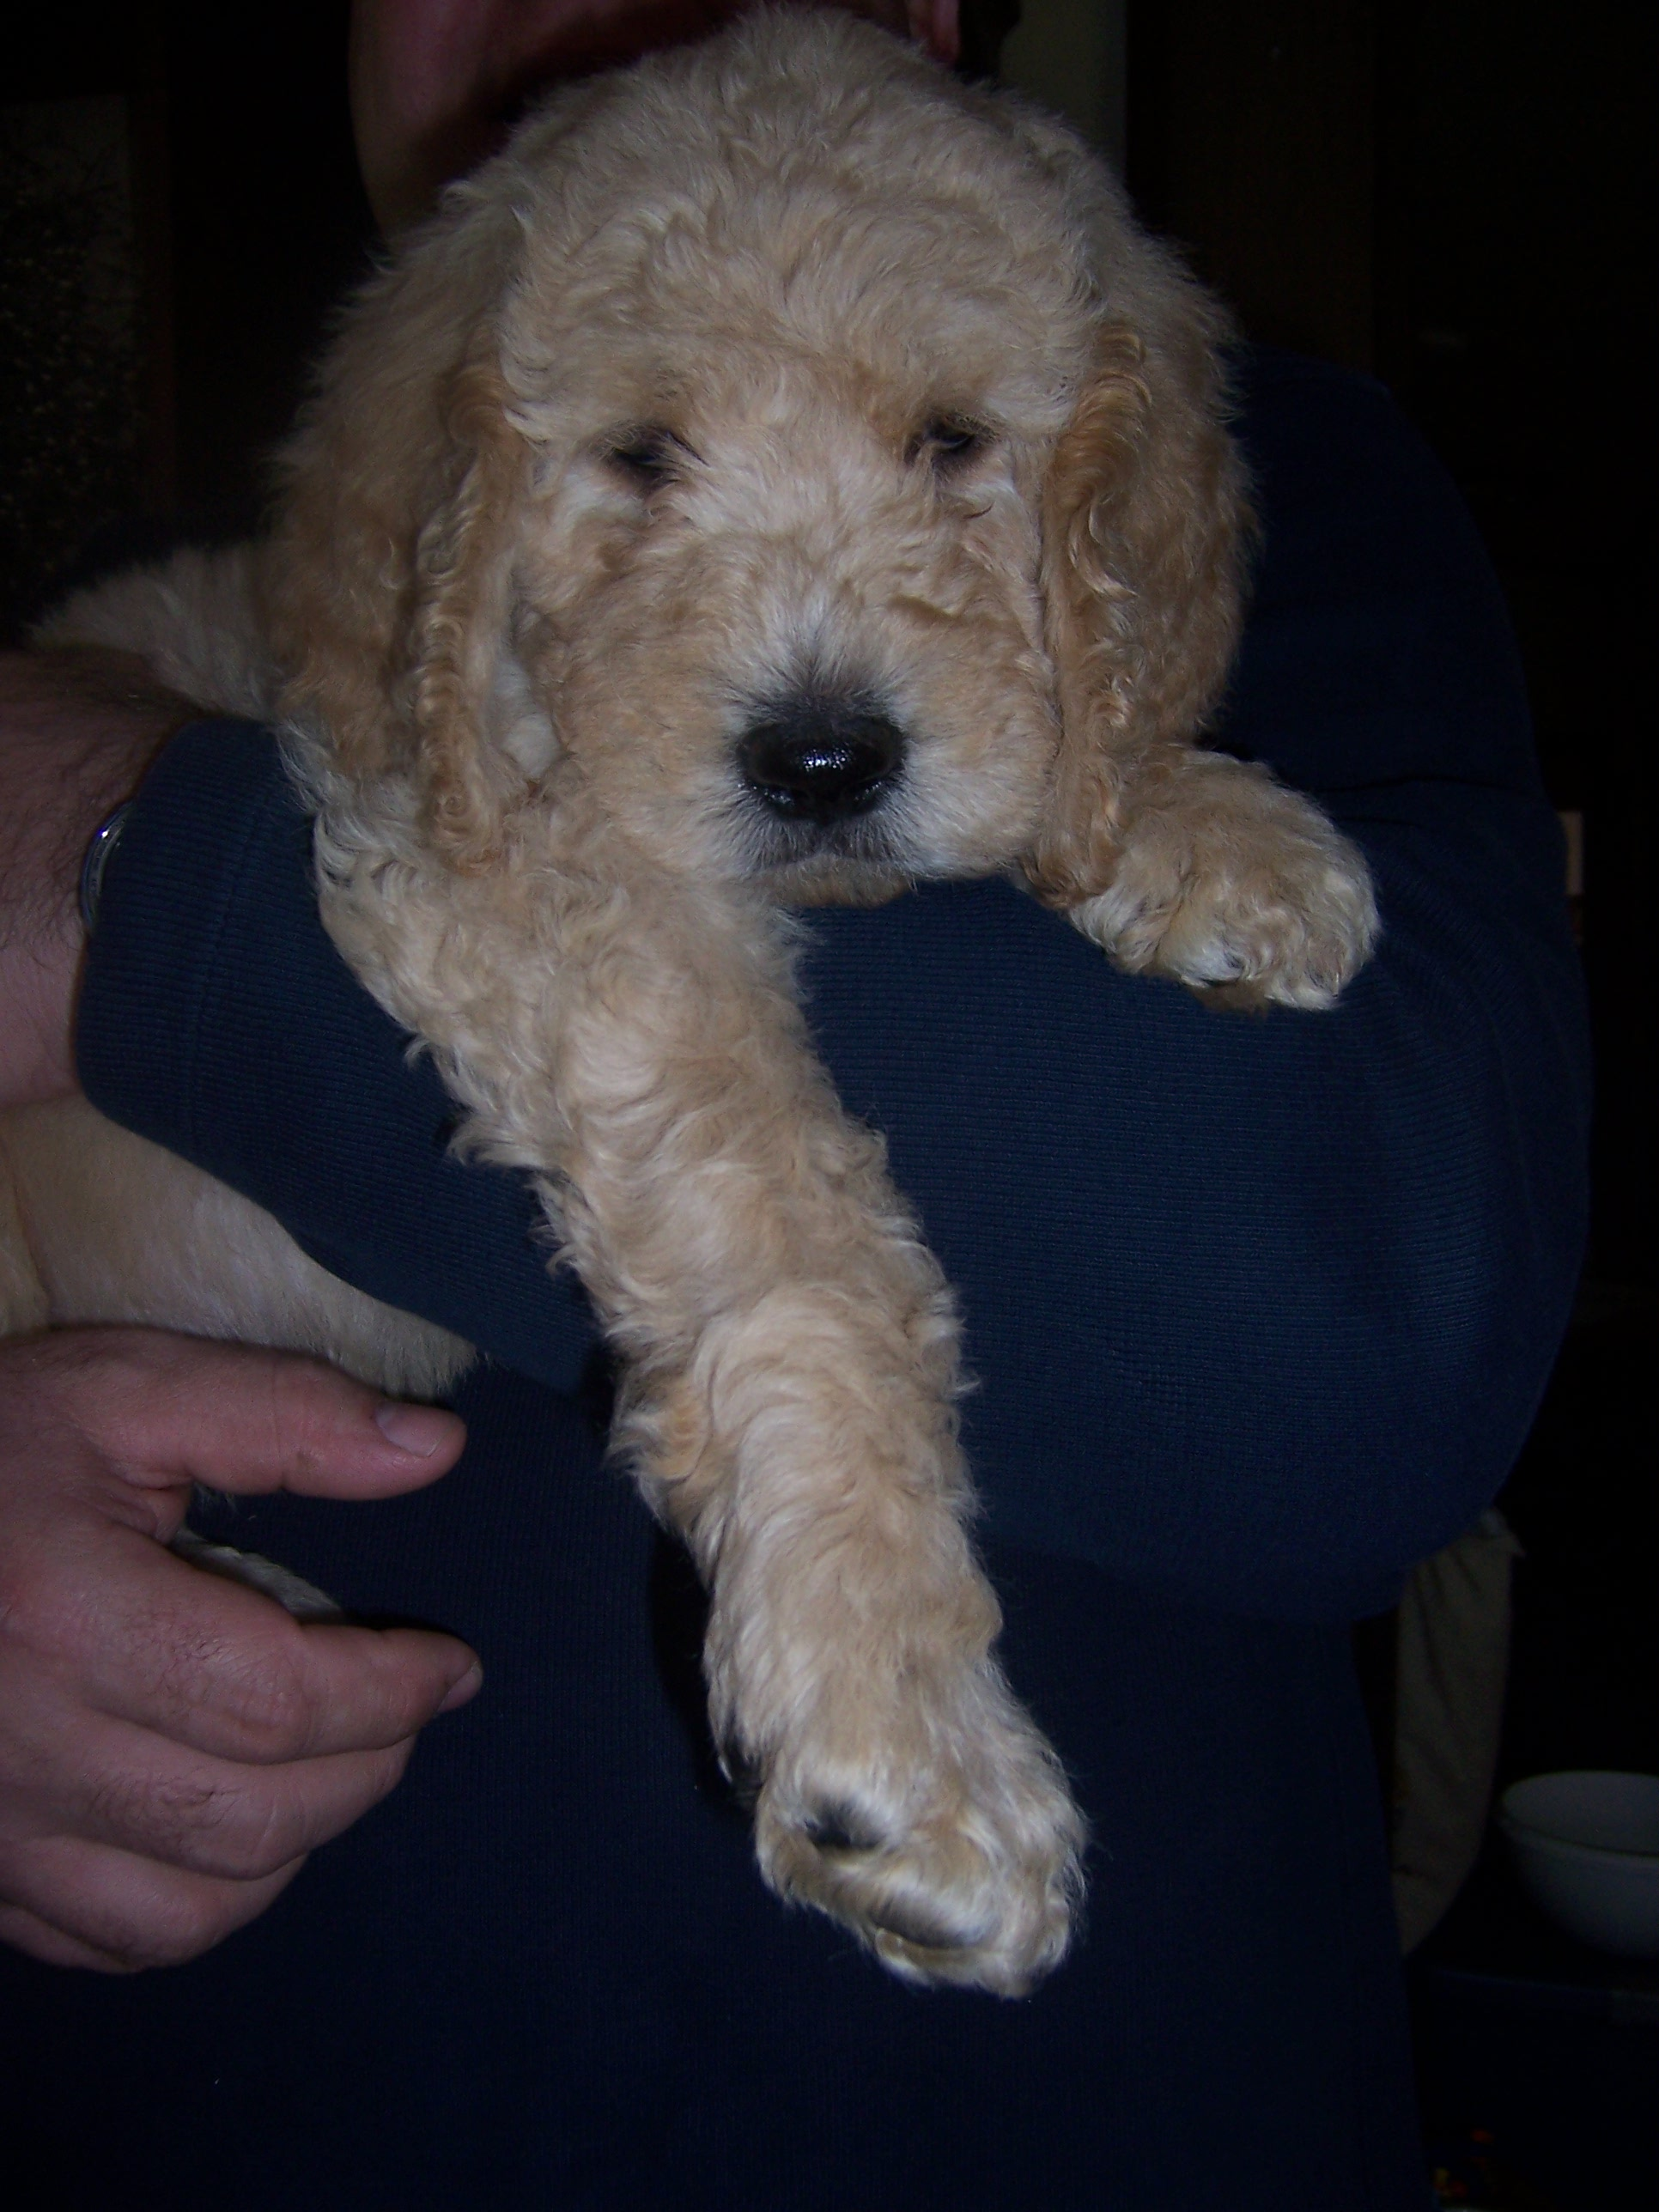 MALE, STD DOODLE PUP GOING TO HIS NEW HOME